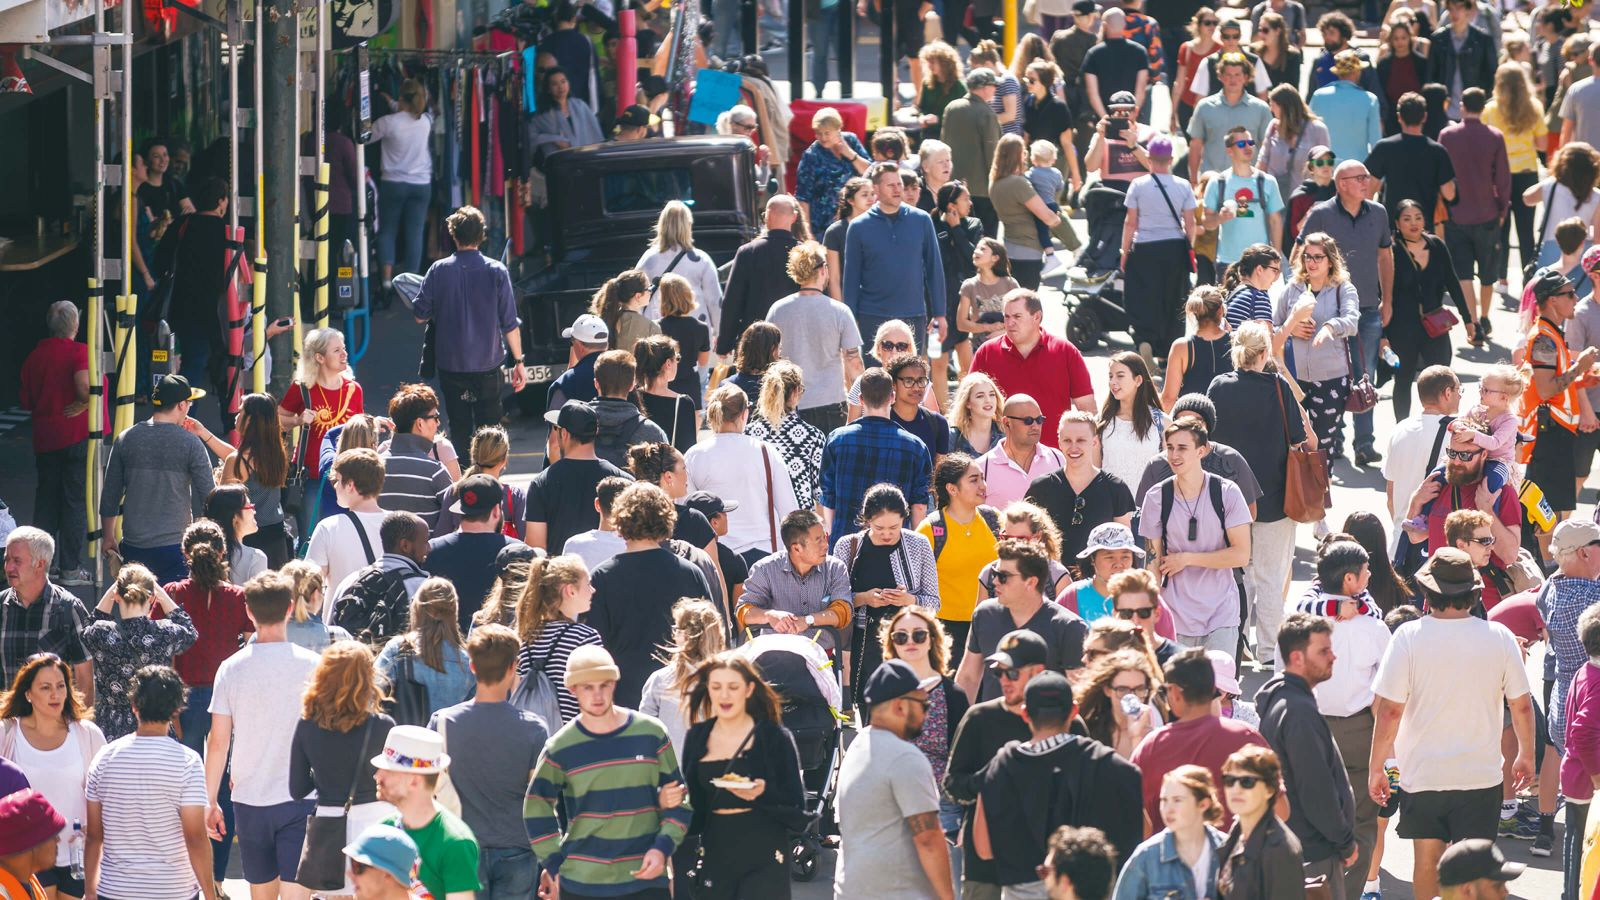 A bird's-eye view of a crowd of people at a street festival on a sunny day.